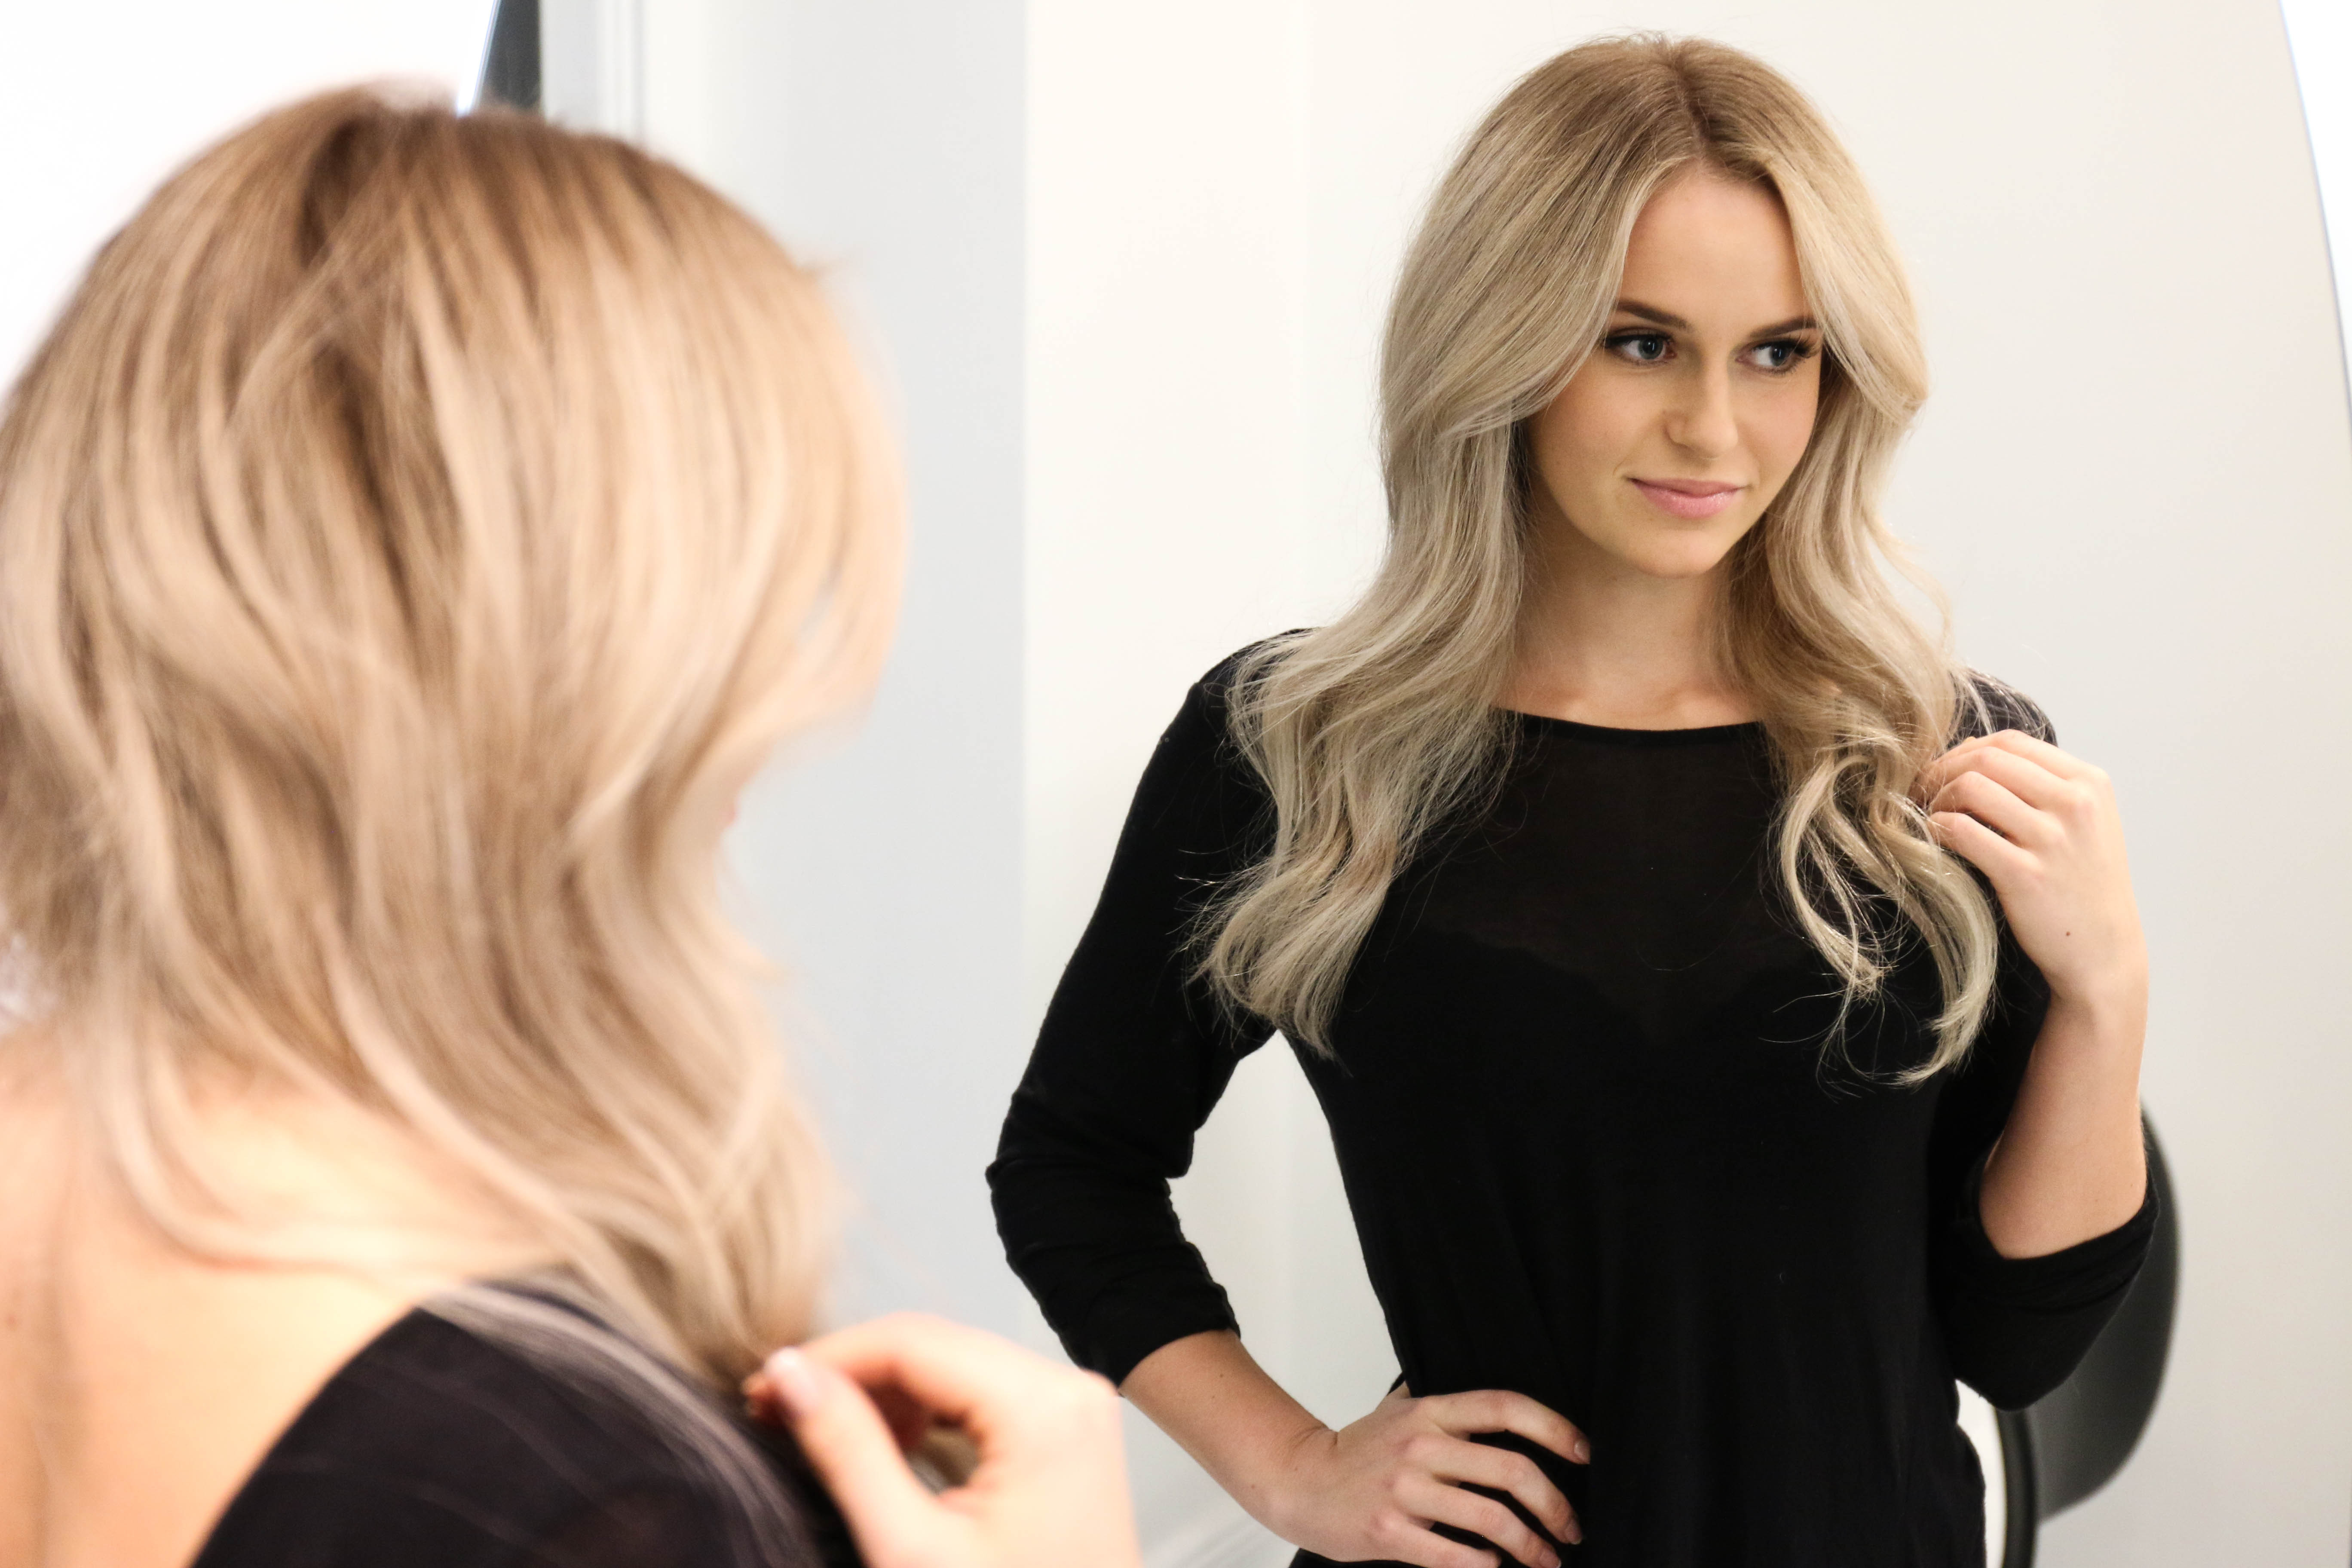 Anna Nystrom Wallpapers Images Photos Pictures Backgrounds